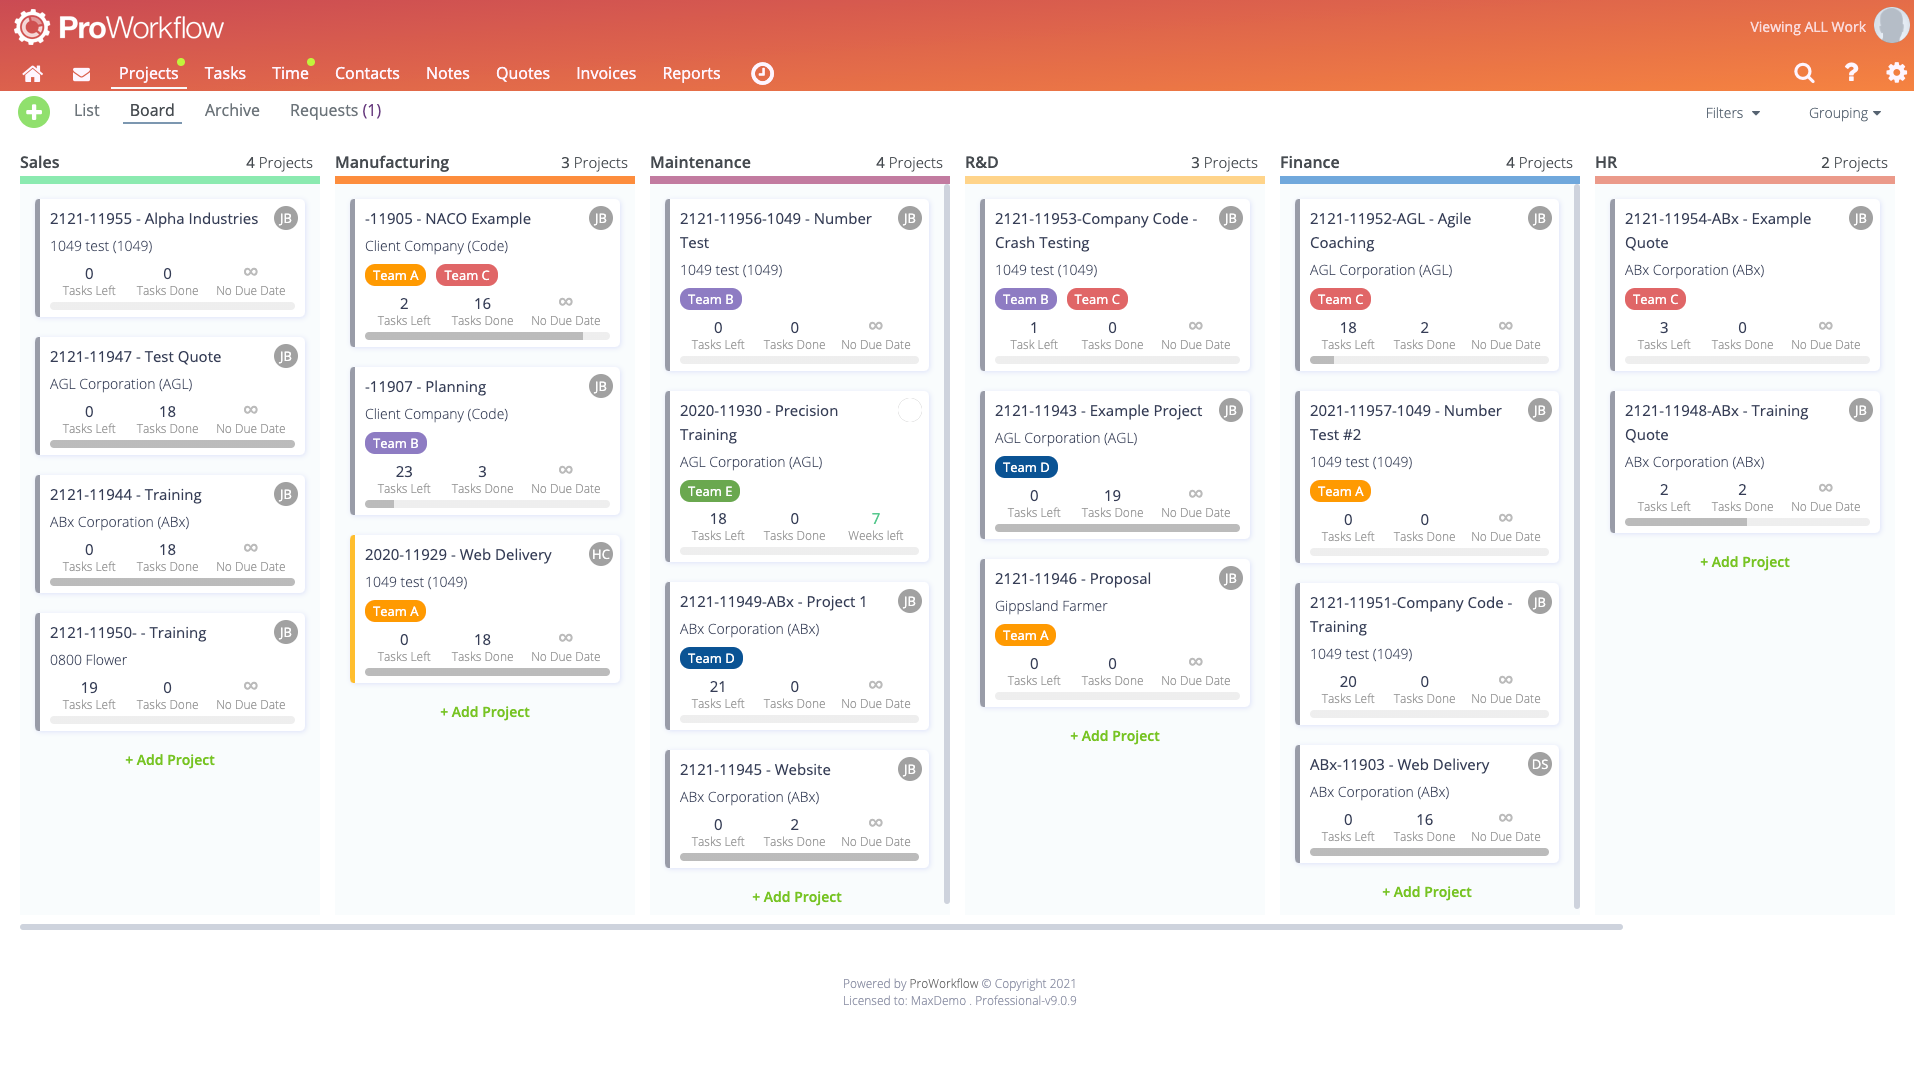 ProWorkflow Software - Kanban Board- agile project management tool designed to help visualize work, limit work-in-progress, and maximize efficiency